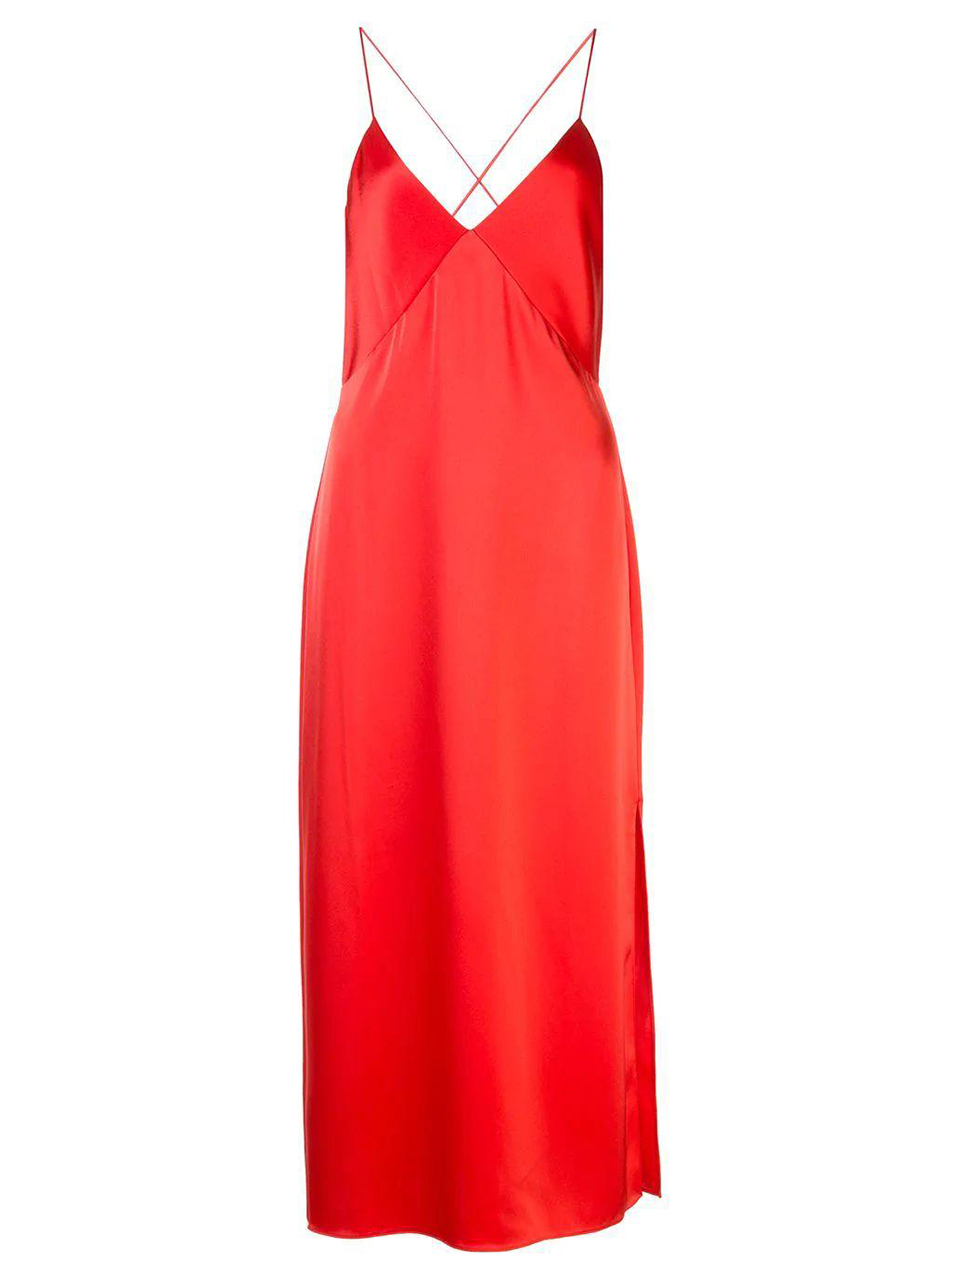 ALICE + OLIVIA Loraine Seamed Slip Midi Dress in Bright Poppy Product Shot